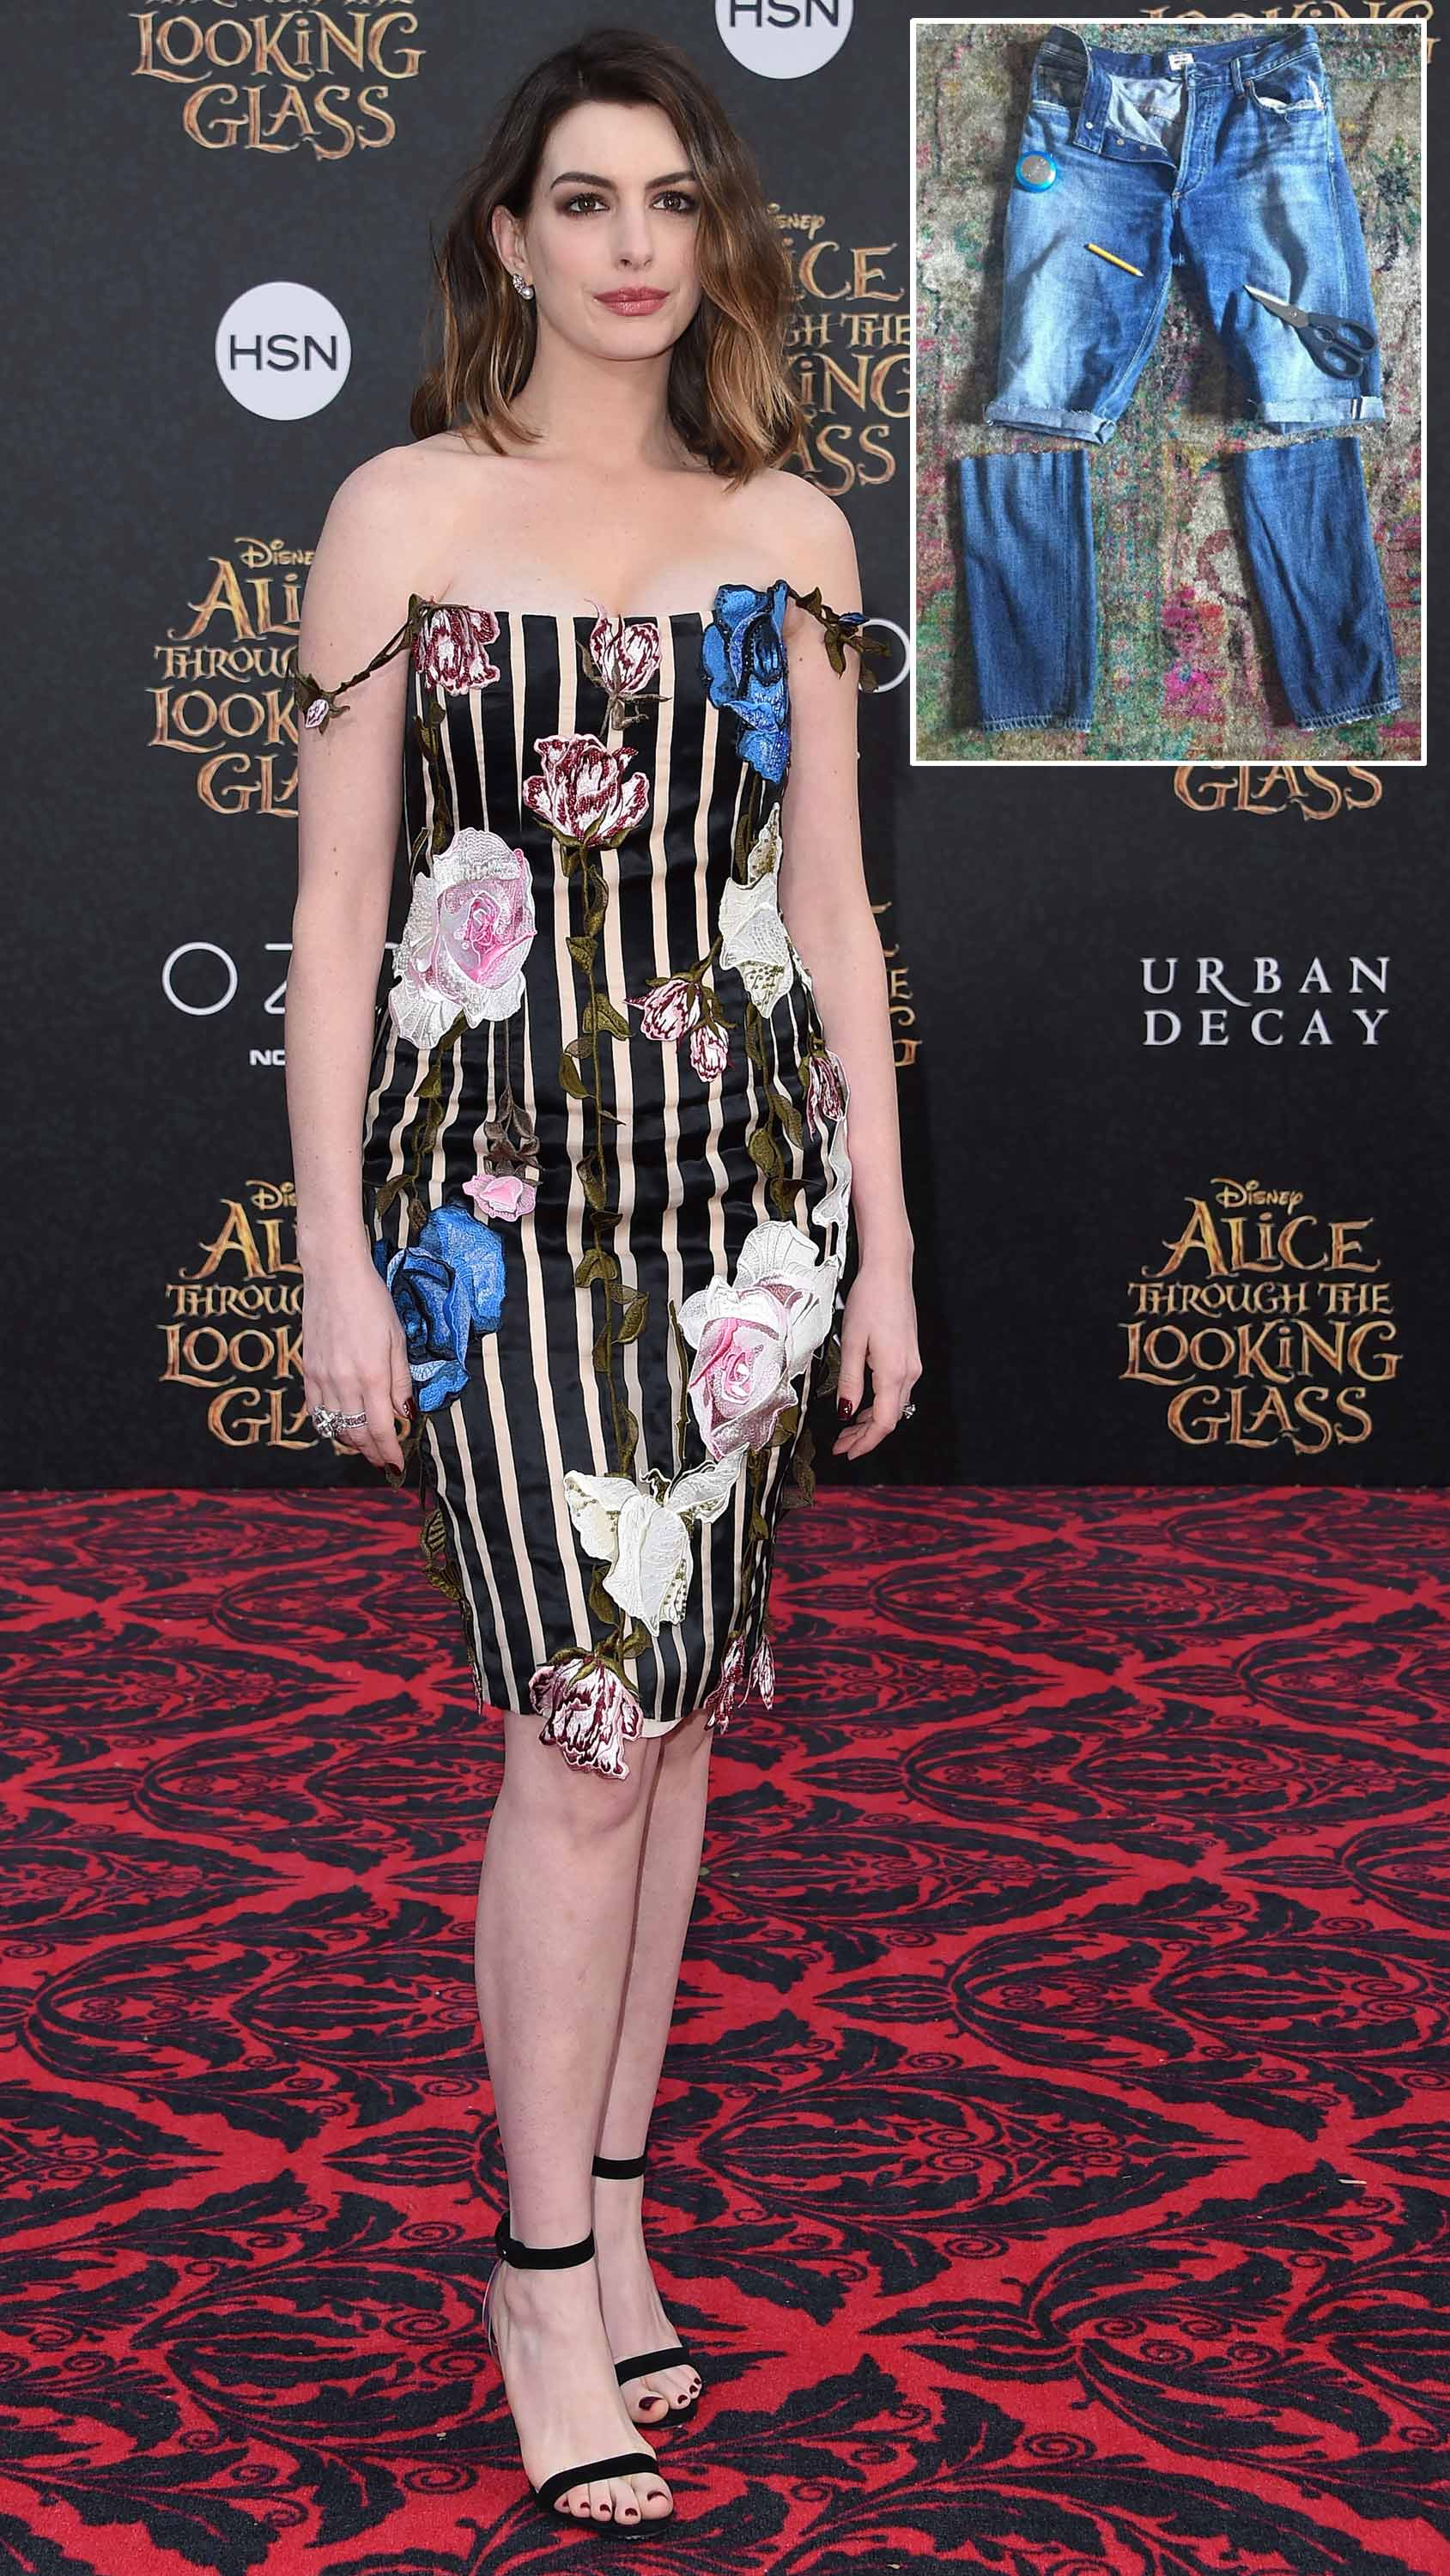 It Has Given to Anne Hathaway for The Shorts